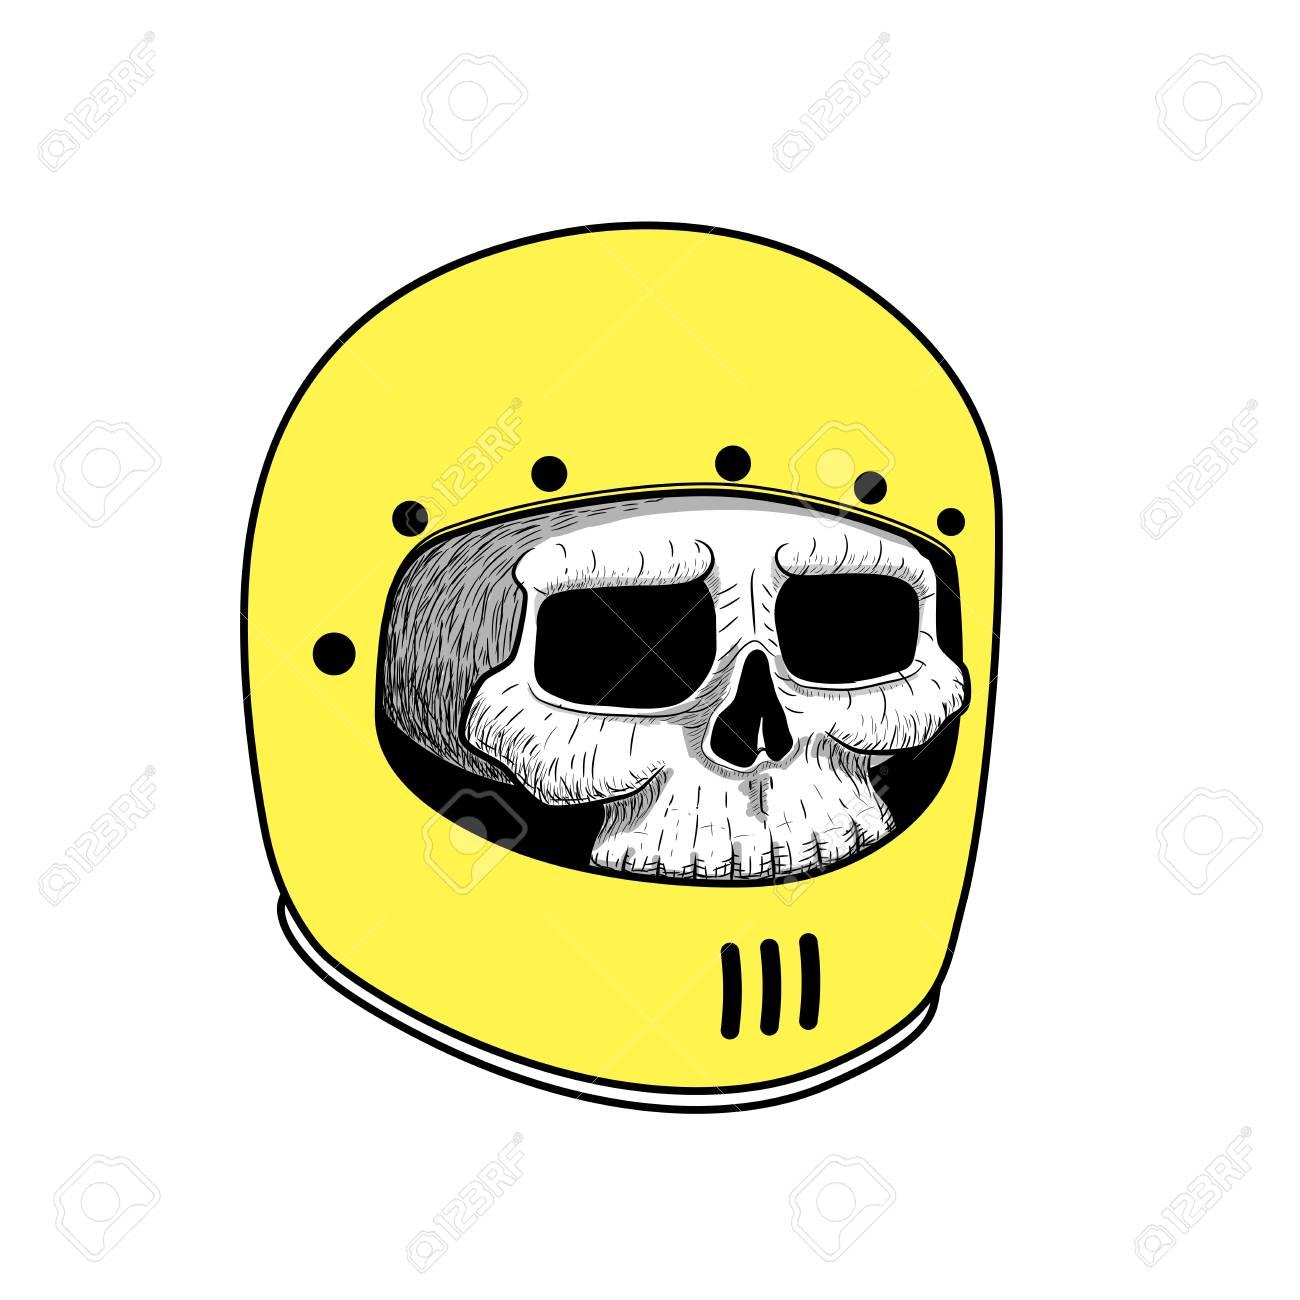 1300x1300 Hand Drawing Of Skull Wearing Motorcycle Helmet. Tattoo Graphic